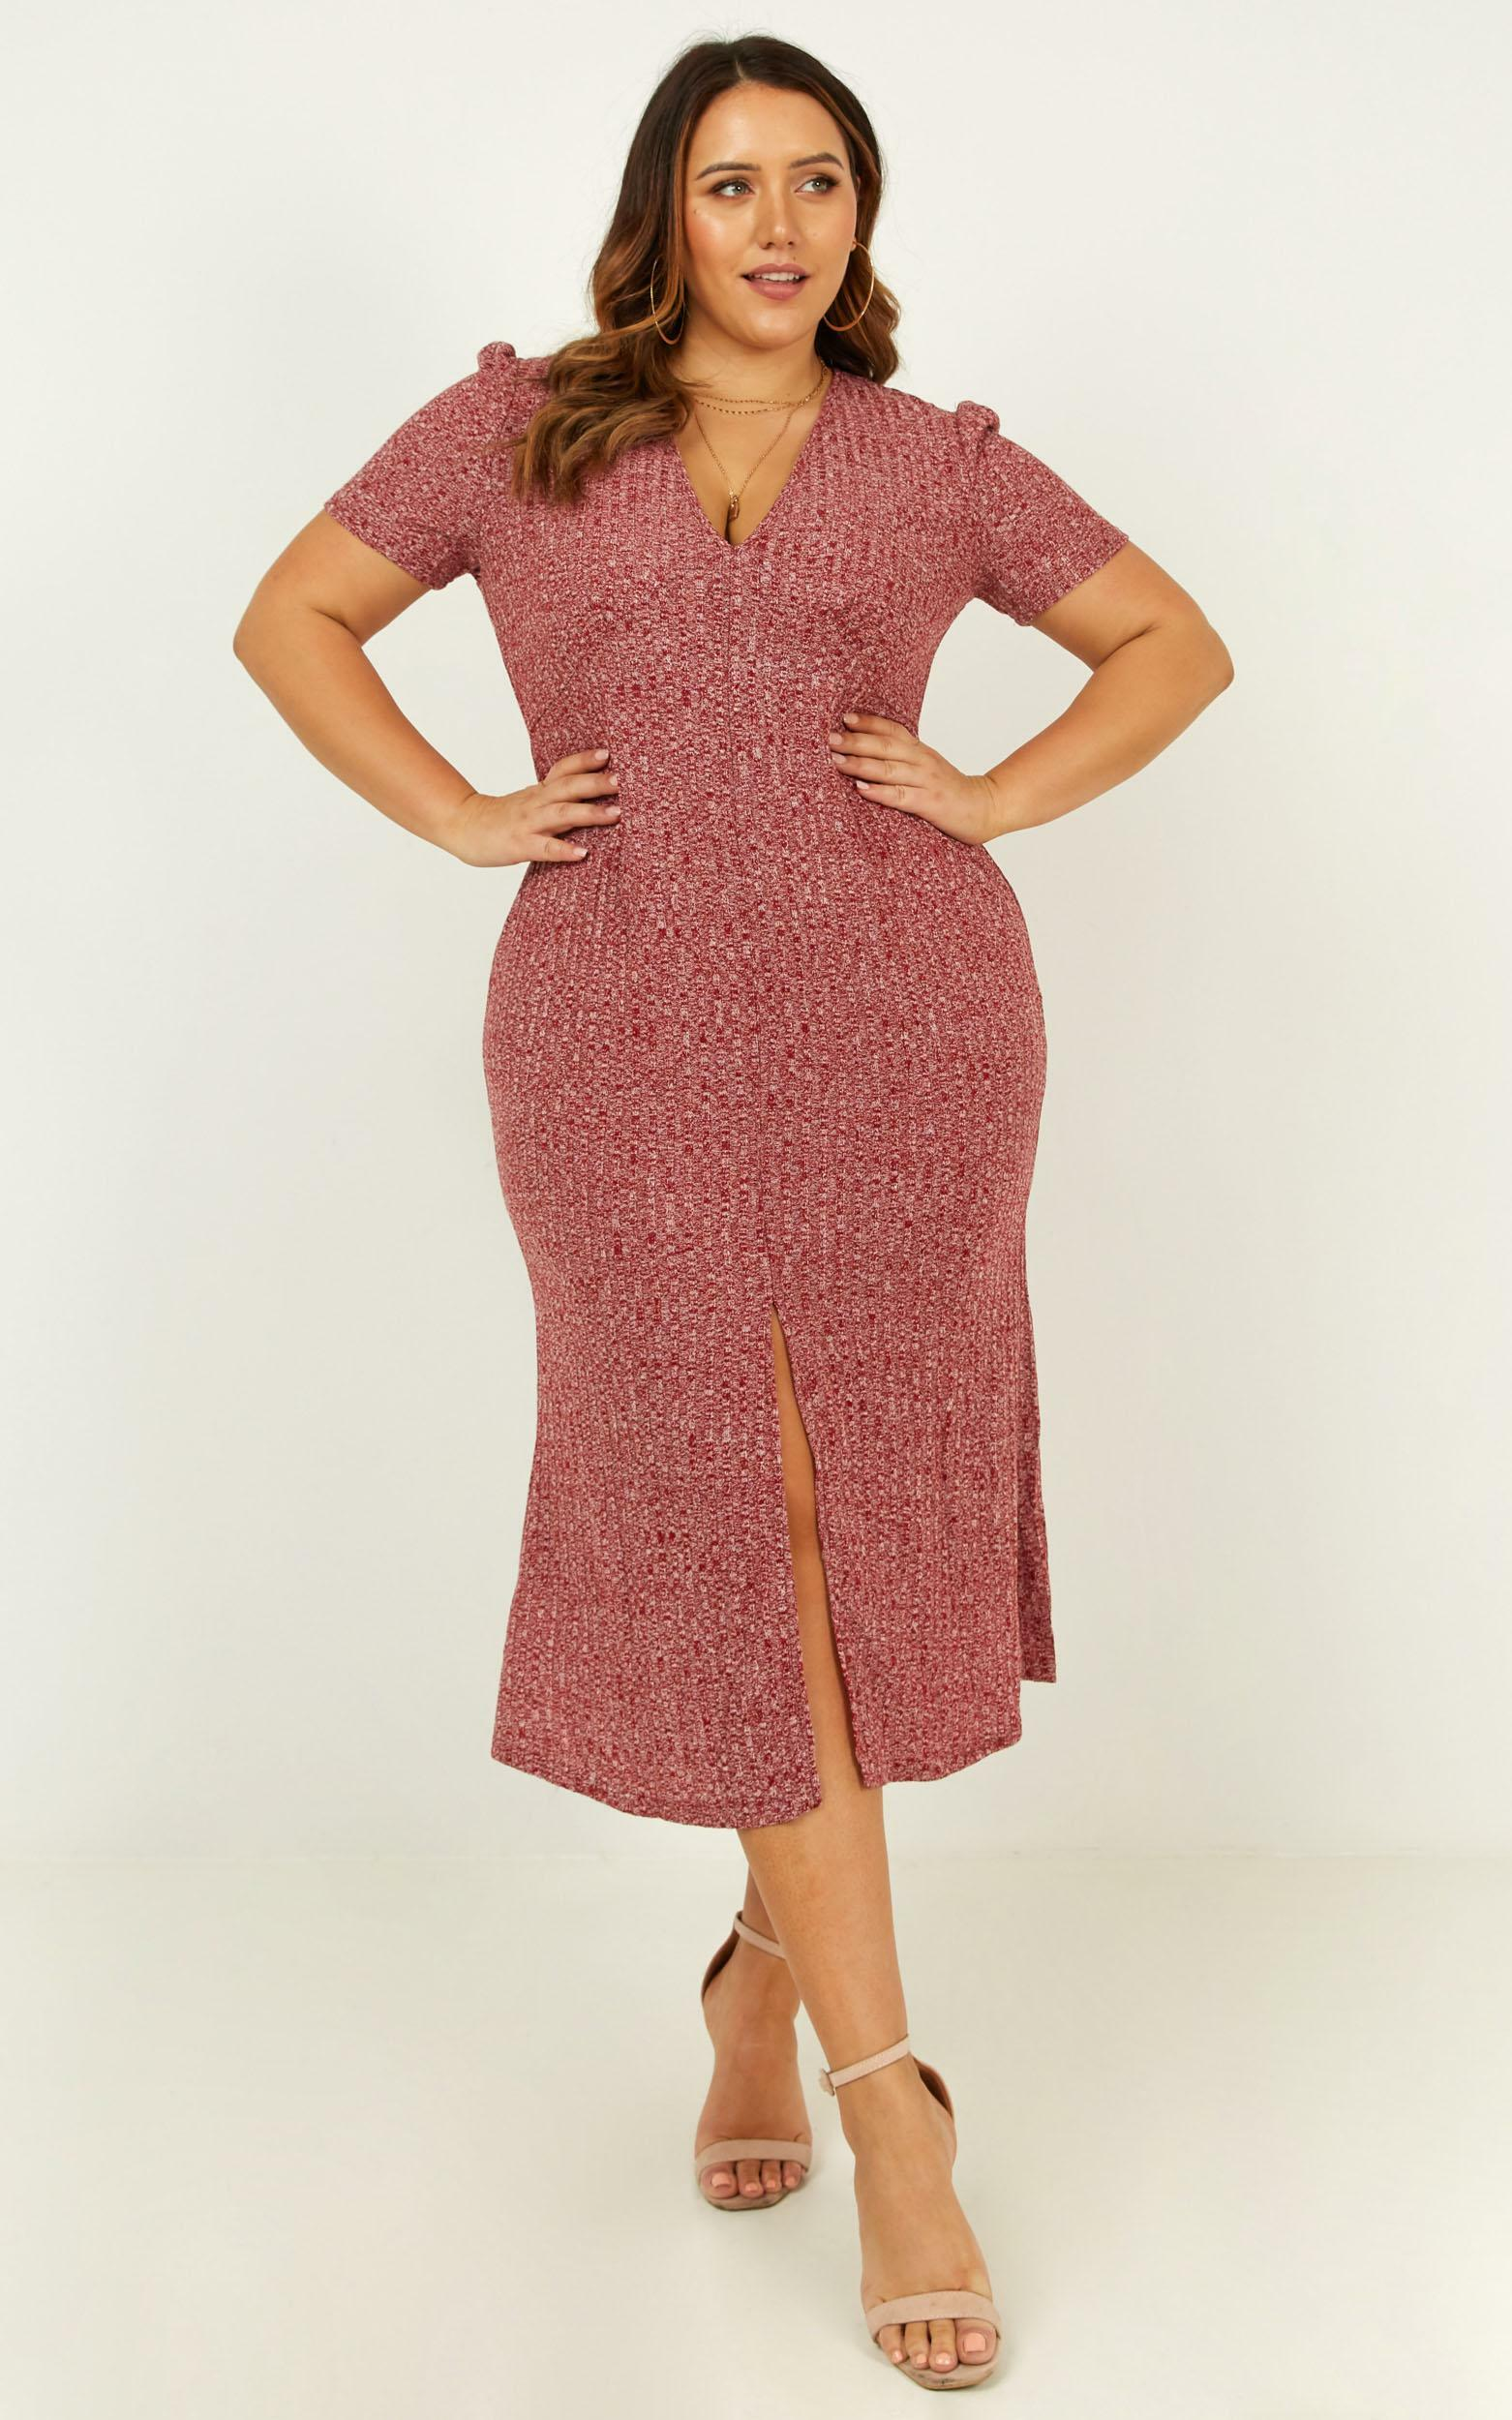 Warming Up Dress in wine marle - 20 (XXXXL), Wine, hi-res image number null